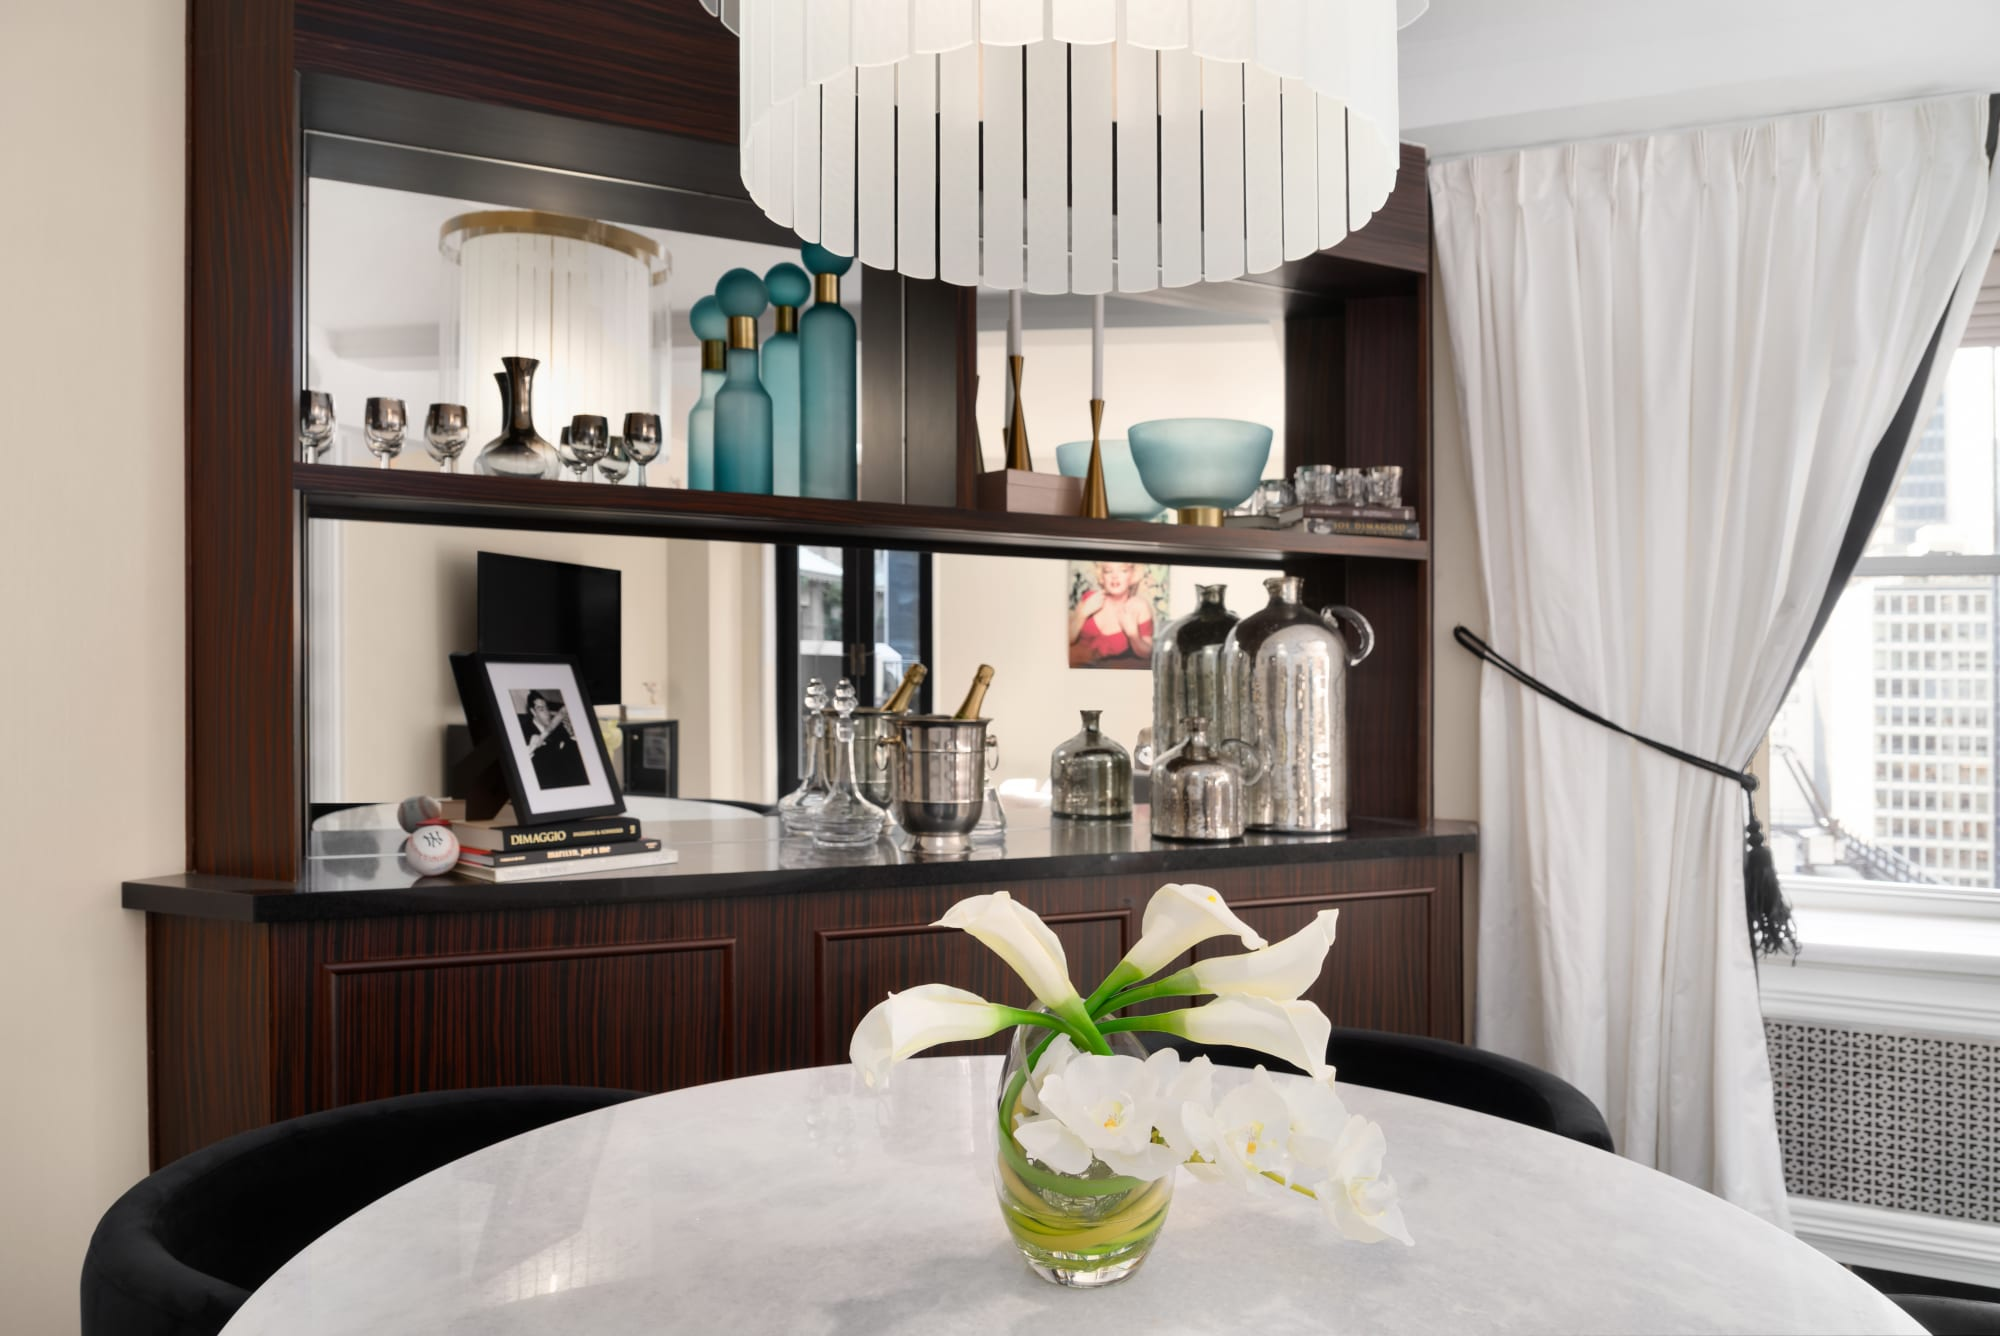 Interior Design by fringe seen at The Lexington Hotel, Autograph Collection, New York - The Norma Jeane Suite